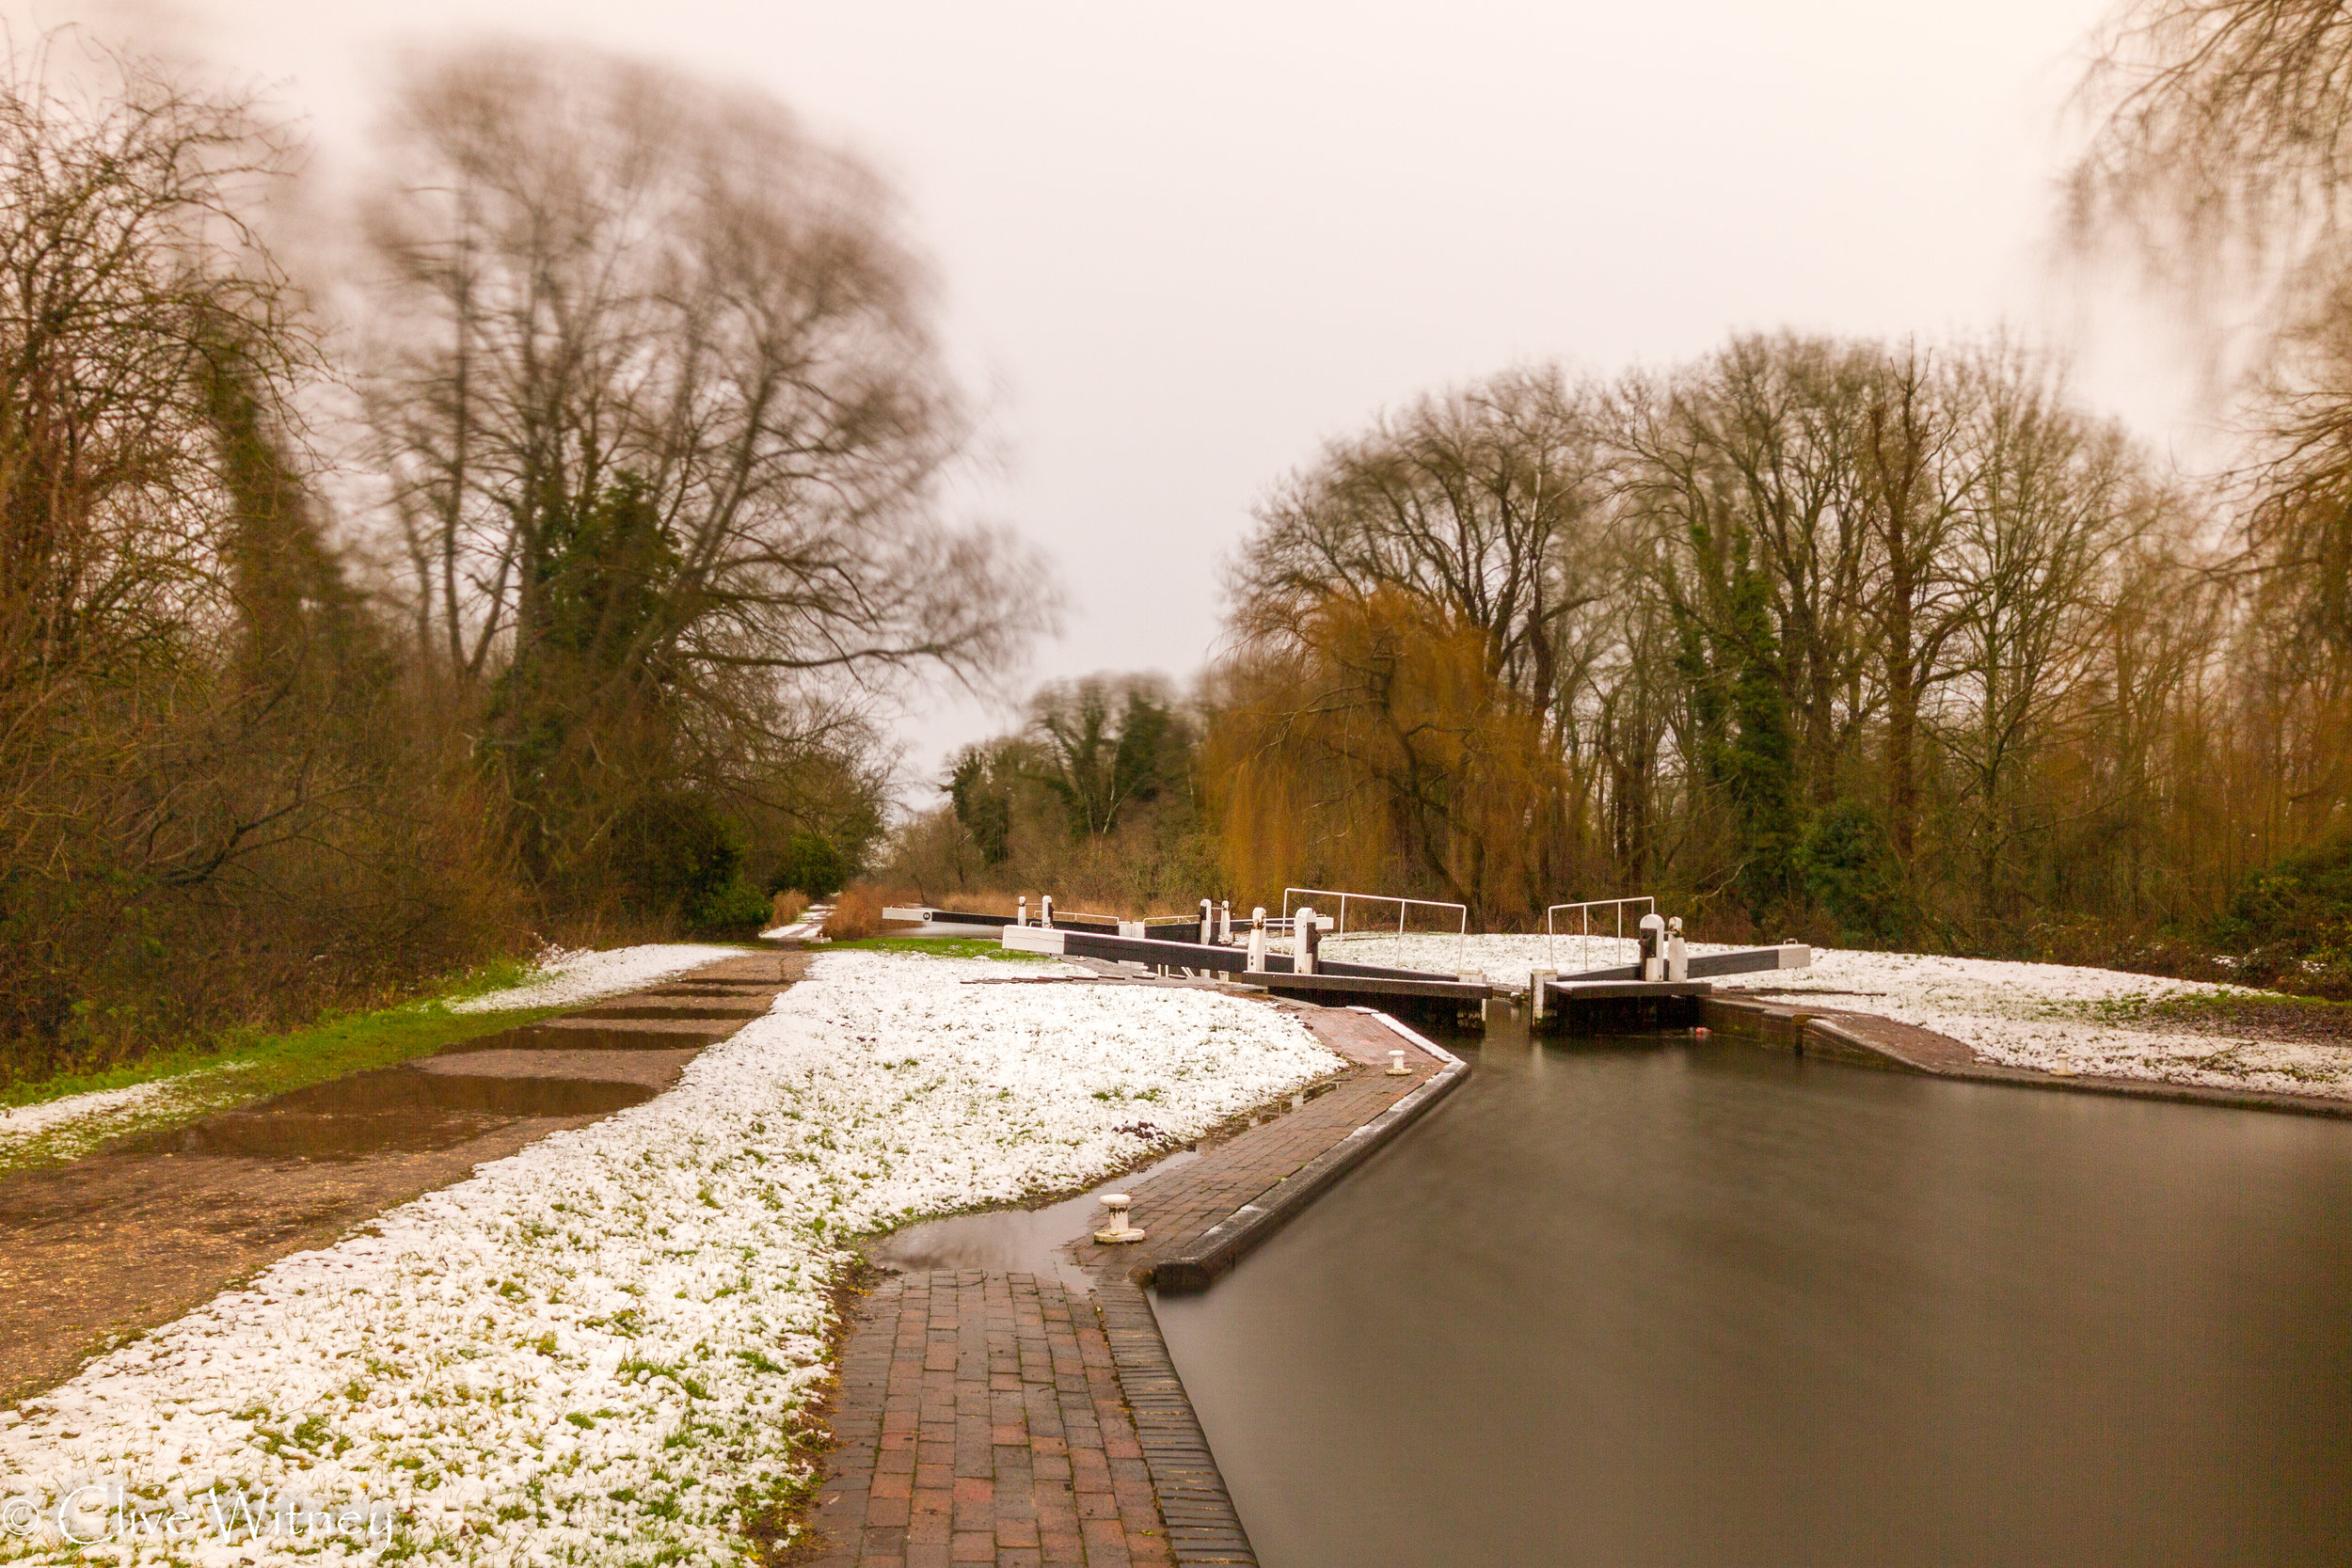 snow on the canal